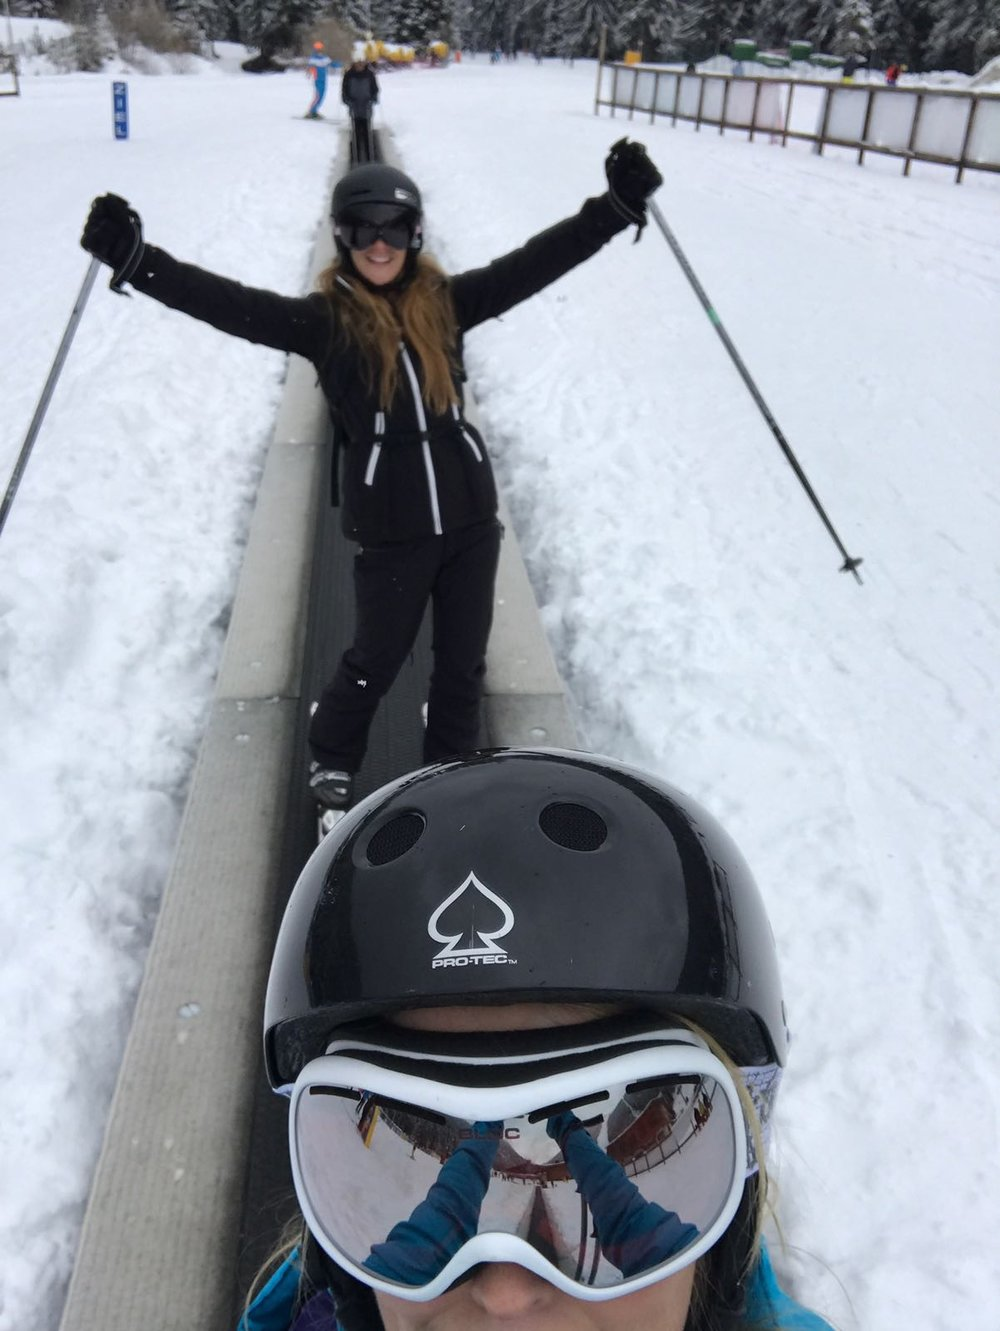 Starting out on the baby slopes